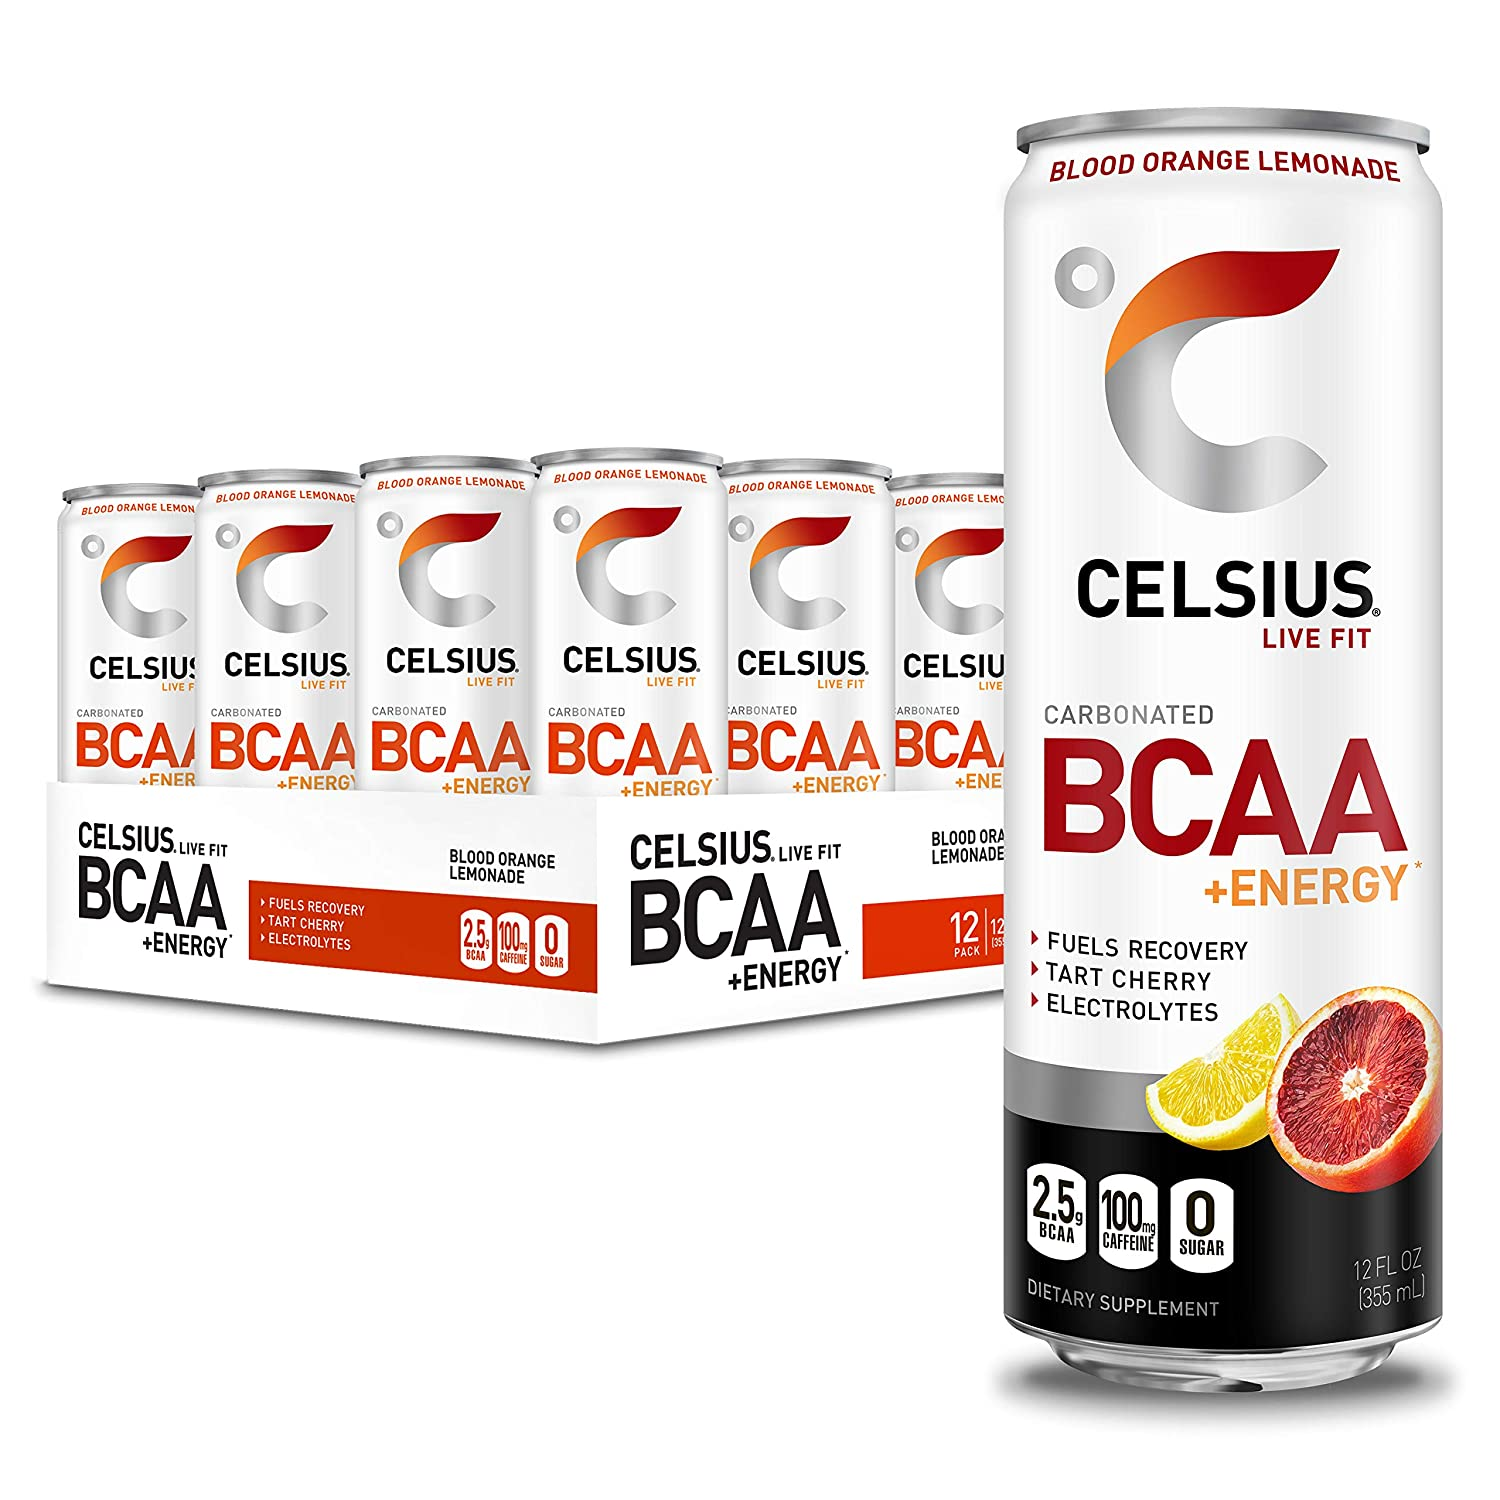 CELSIUS BCAA +Energy Sparkling Post-Workout Recovery & Hydration Drink, Blood Orange Lemonade, 12oz. Slim Can, 12 Pack